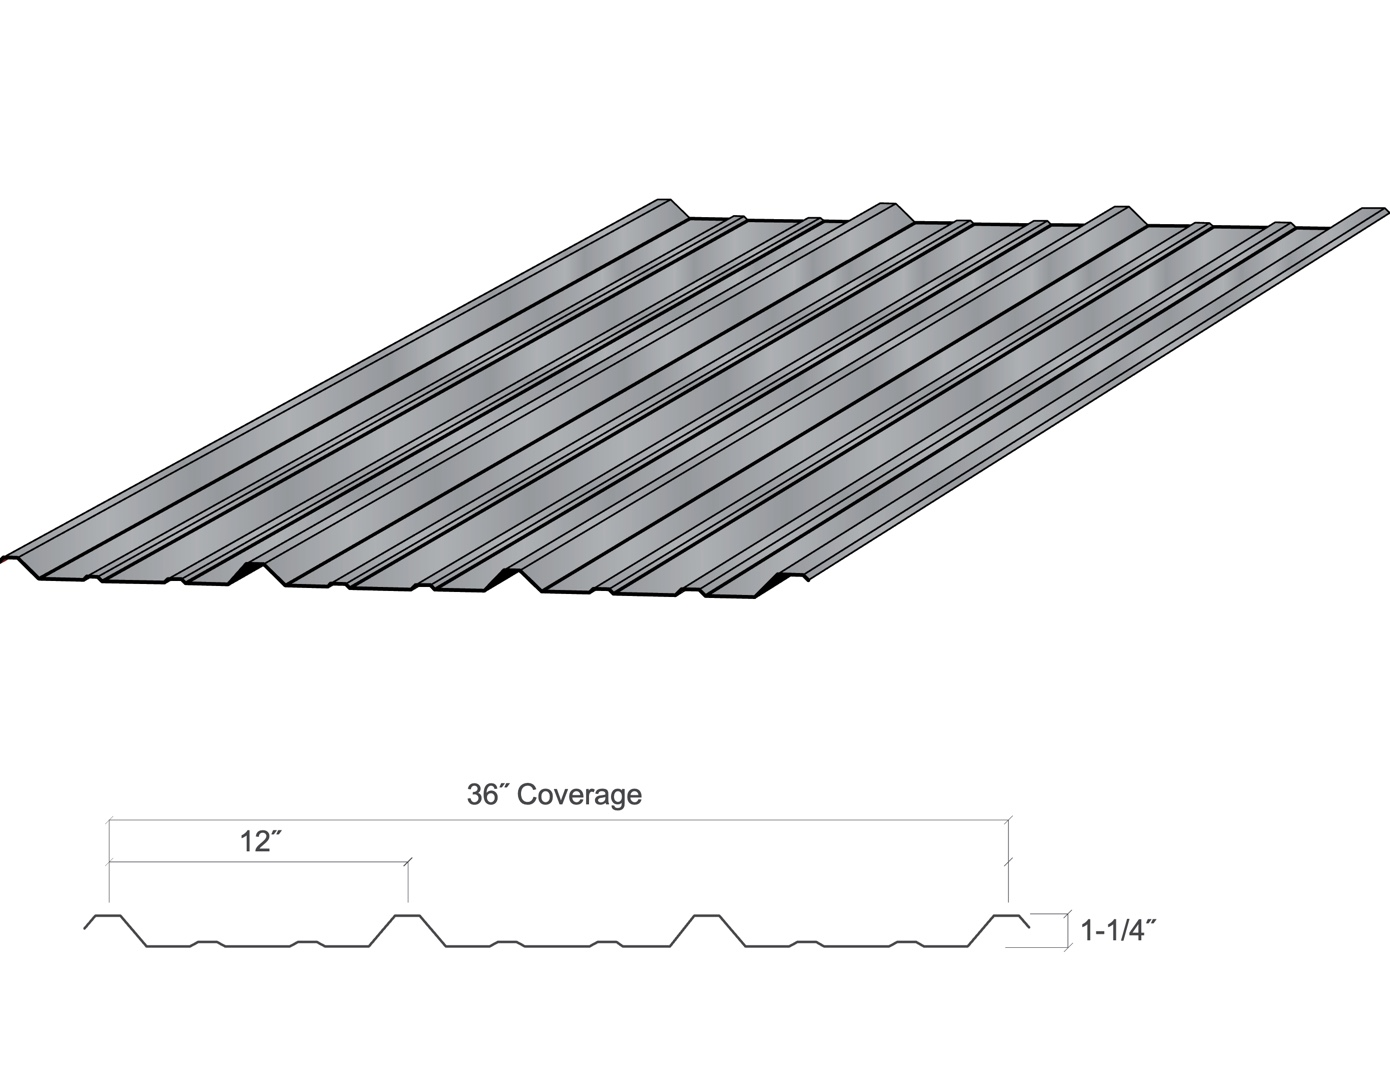 Diagram of R Panel roof section with labeled measurements.